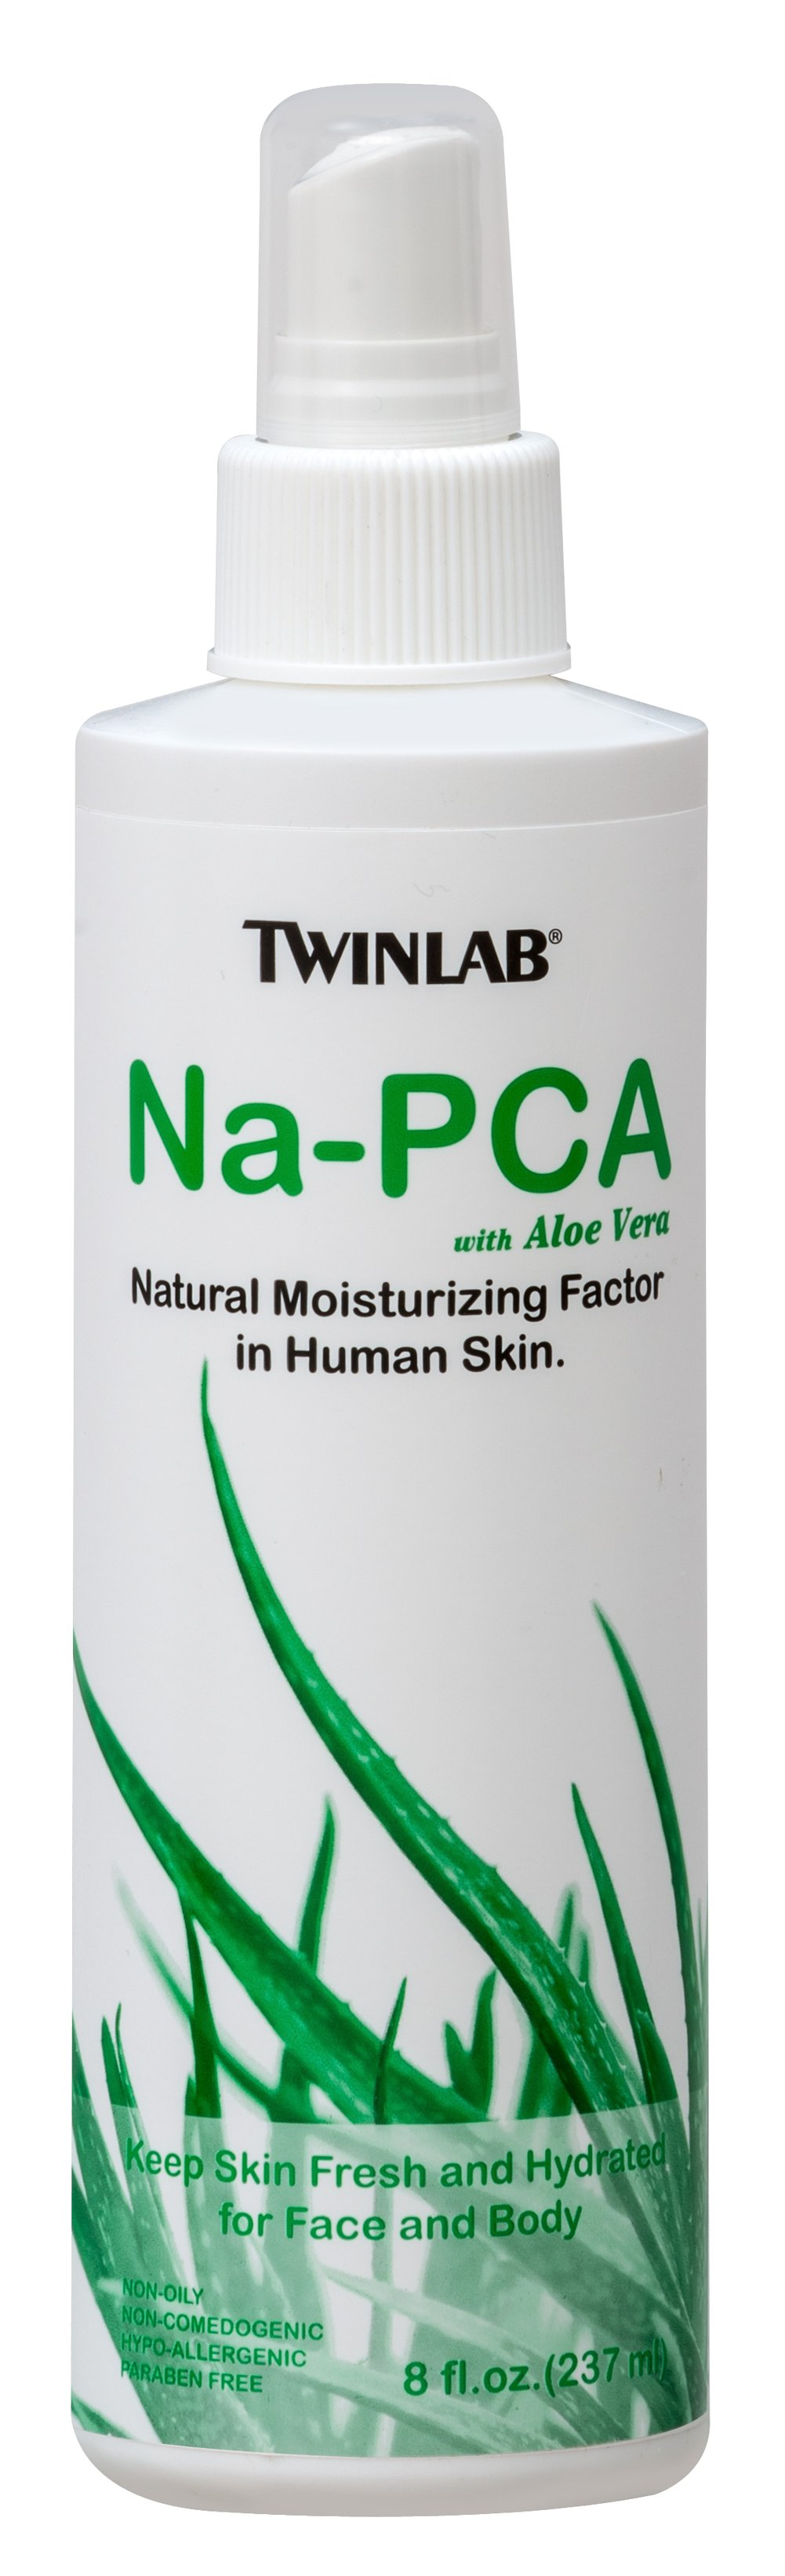 Na-PCA with Aloe Vera <p><strong>From the Manufacturer's Label:</strong></p><p>Twinlab Na-PCA with Aloe Vera is a Ph-Balanced, concentrated solution of the sodium salt of Pyrrolidone Carboxylic Acid, a natural moisturizing factor found in human skin.  Na-PCA is synthesized from Glutamic Acid, a nonessential amino acid.</p><p>The skin contains natural moisturizers, the most important being Na-PCA. Old skin contains only about half the amount of Na-PCA